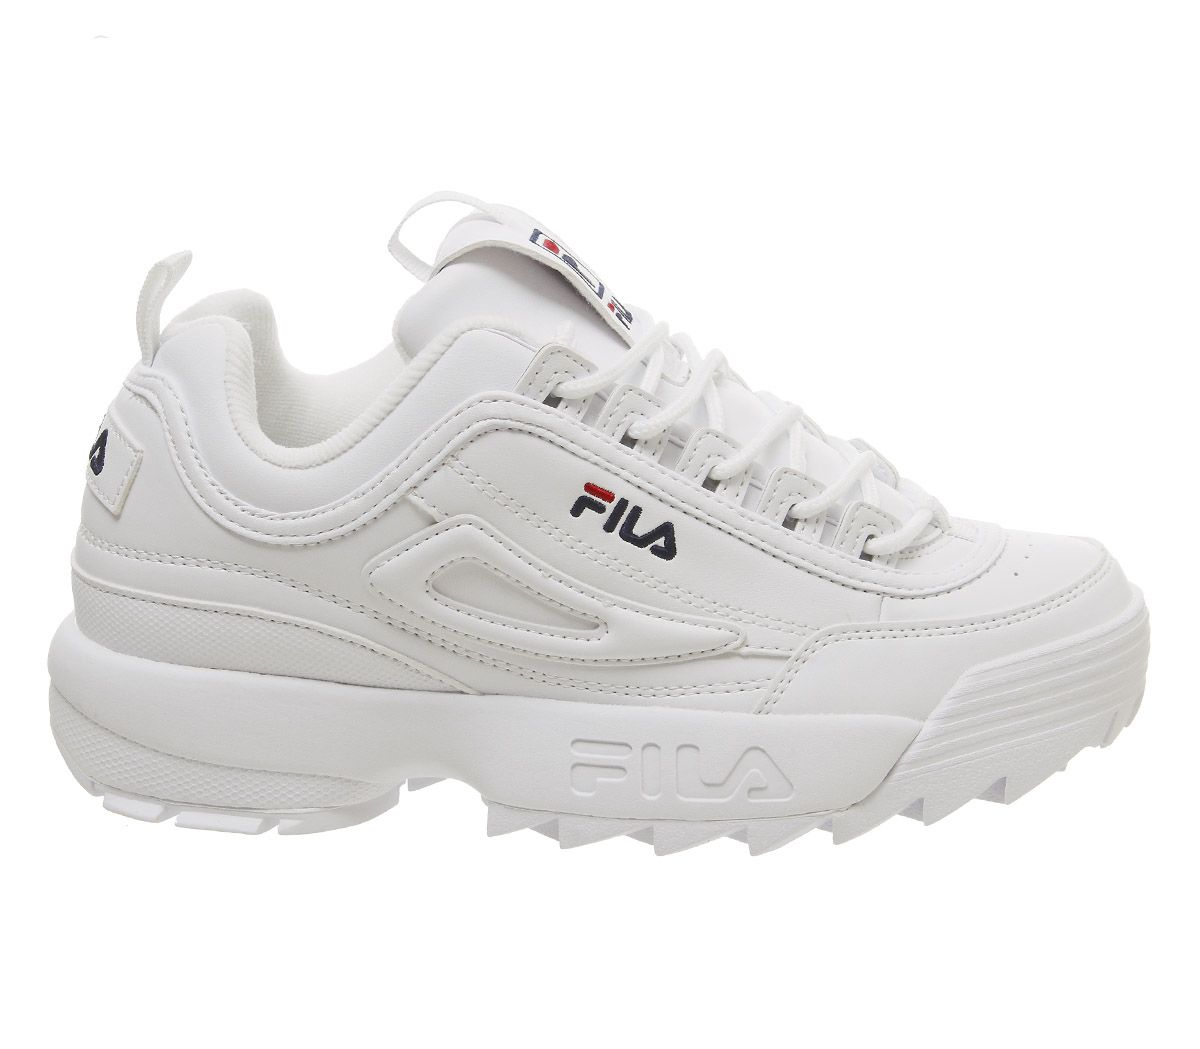 ff562d94190089 Sentinel Womens Fila Disruptor Ii Trainers White Leather G Trainers Shoes